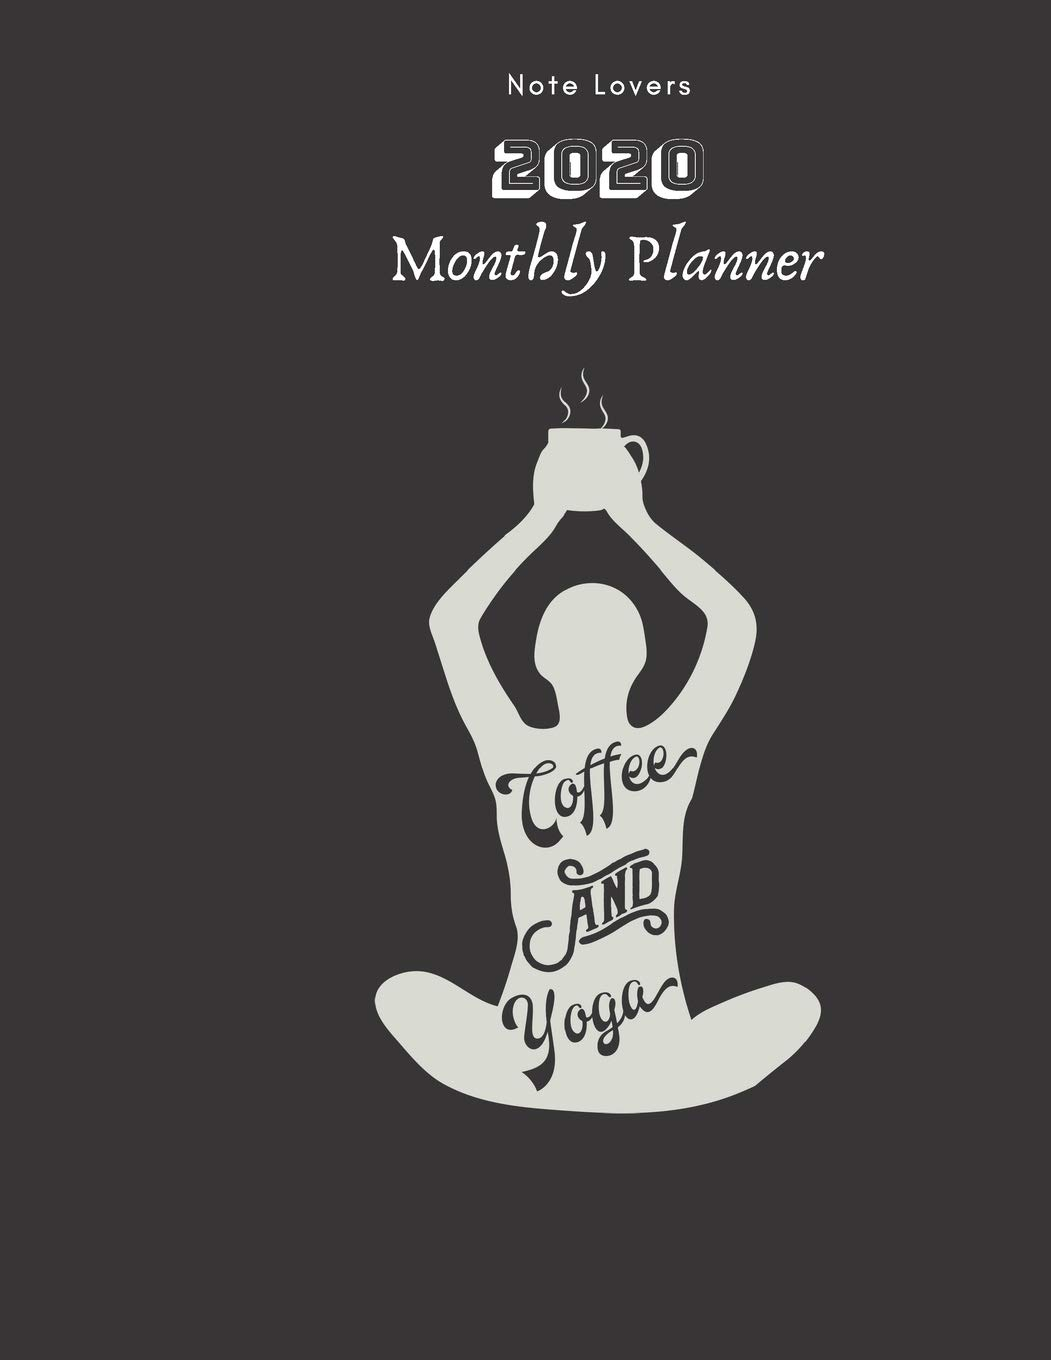 Amazon.com: Coffee And Yoga - 2020 Monthly Planner: Gift for ...